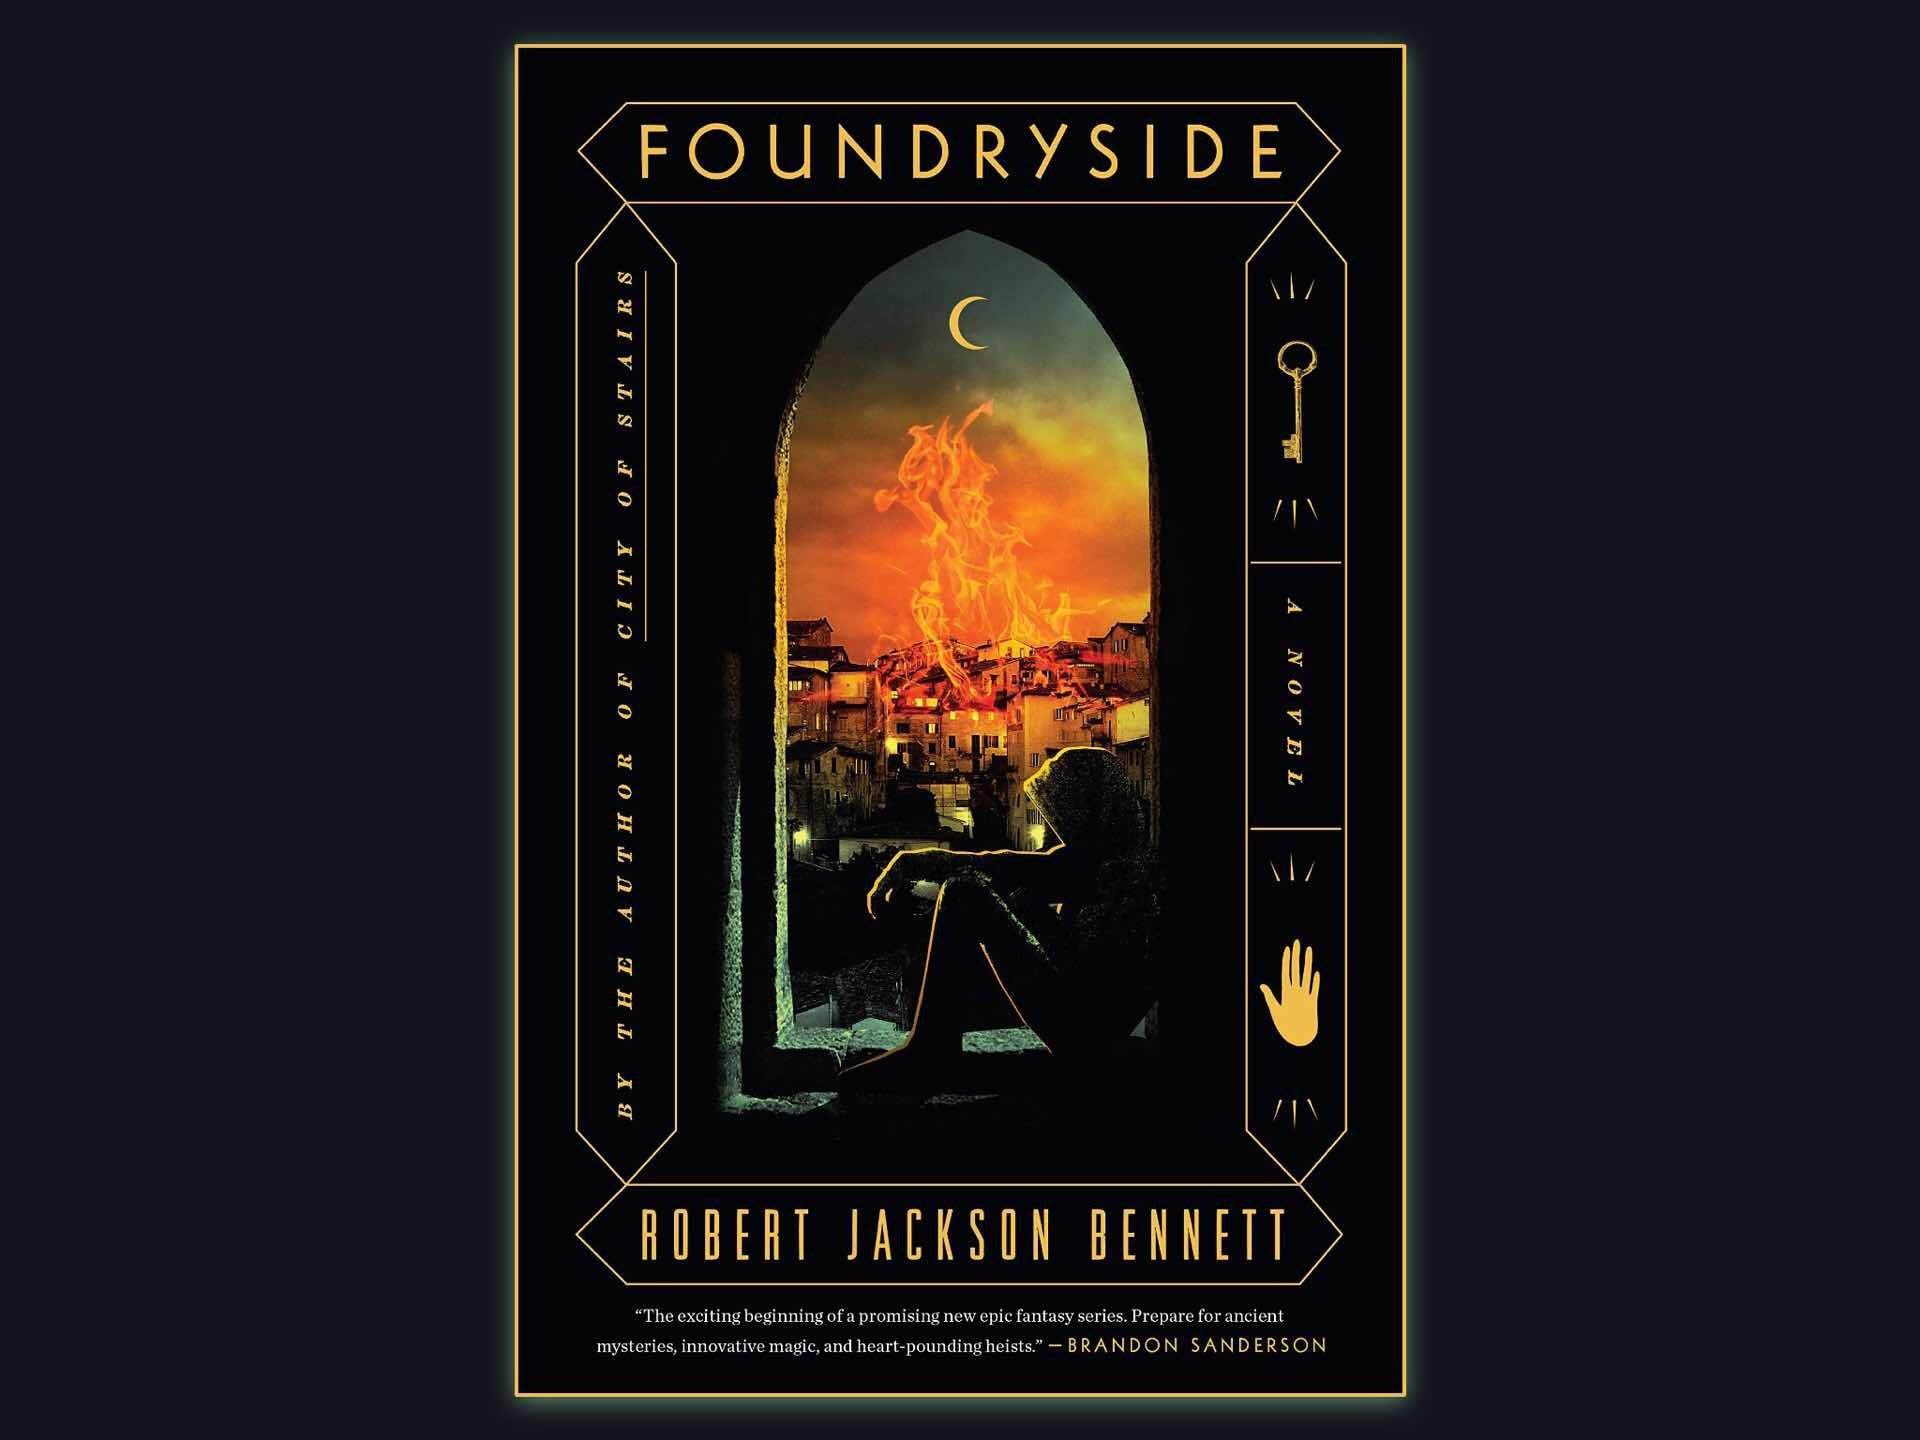 Foundryside by Robert Jackson Bennett. ($20 hardcover, $16 paperback)